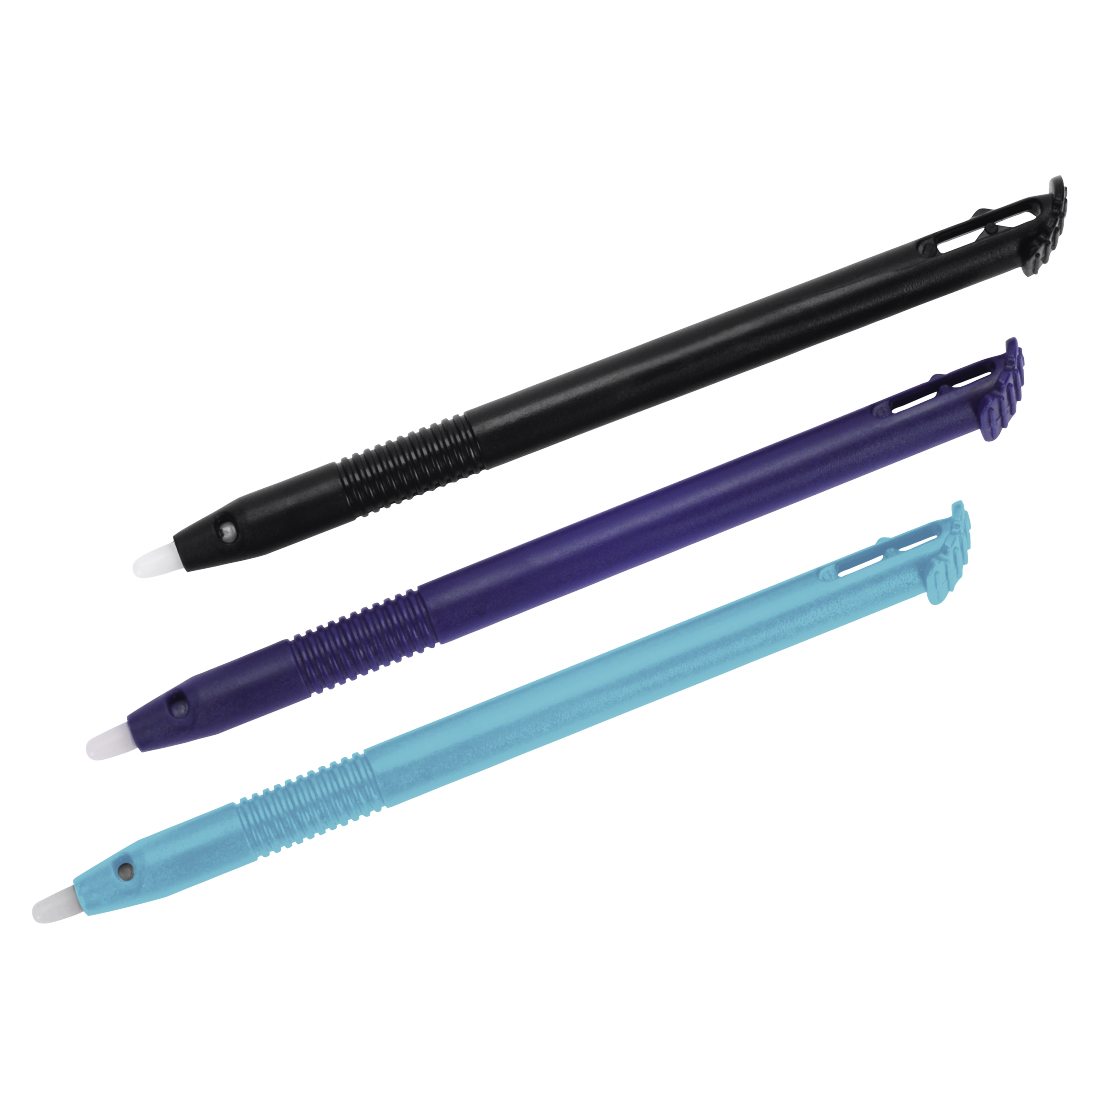 abx High-Res Image - Hama, Input Pens for Nintendo New 3DS XL